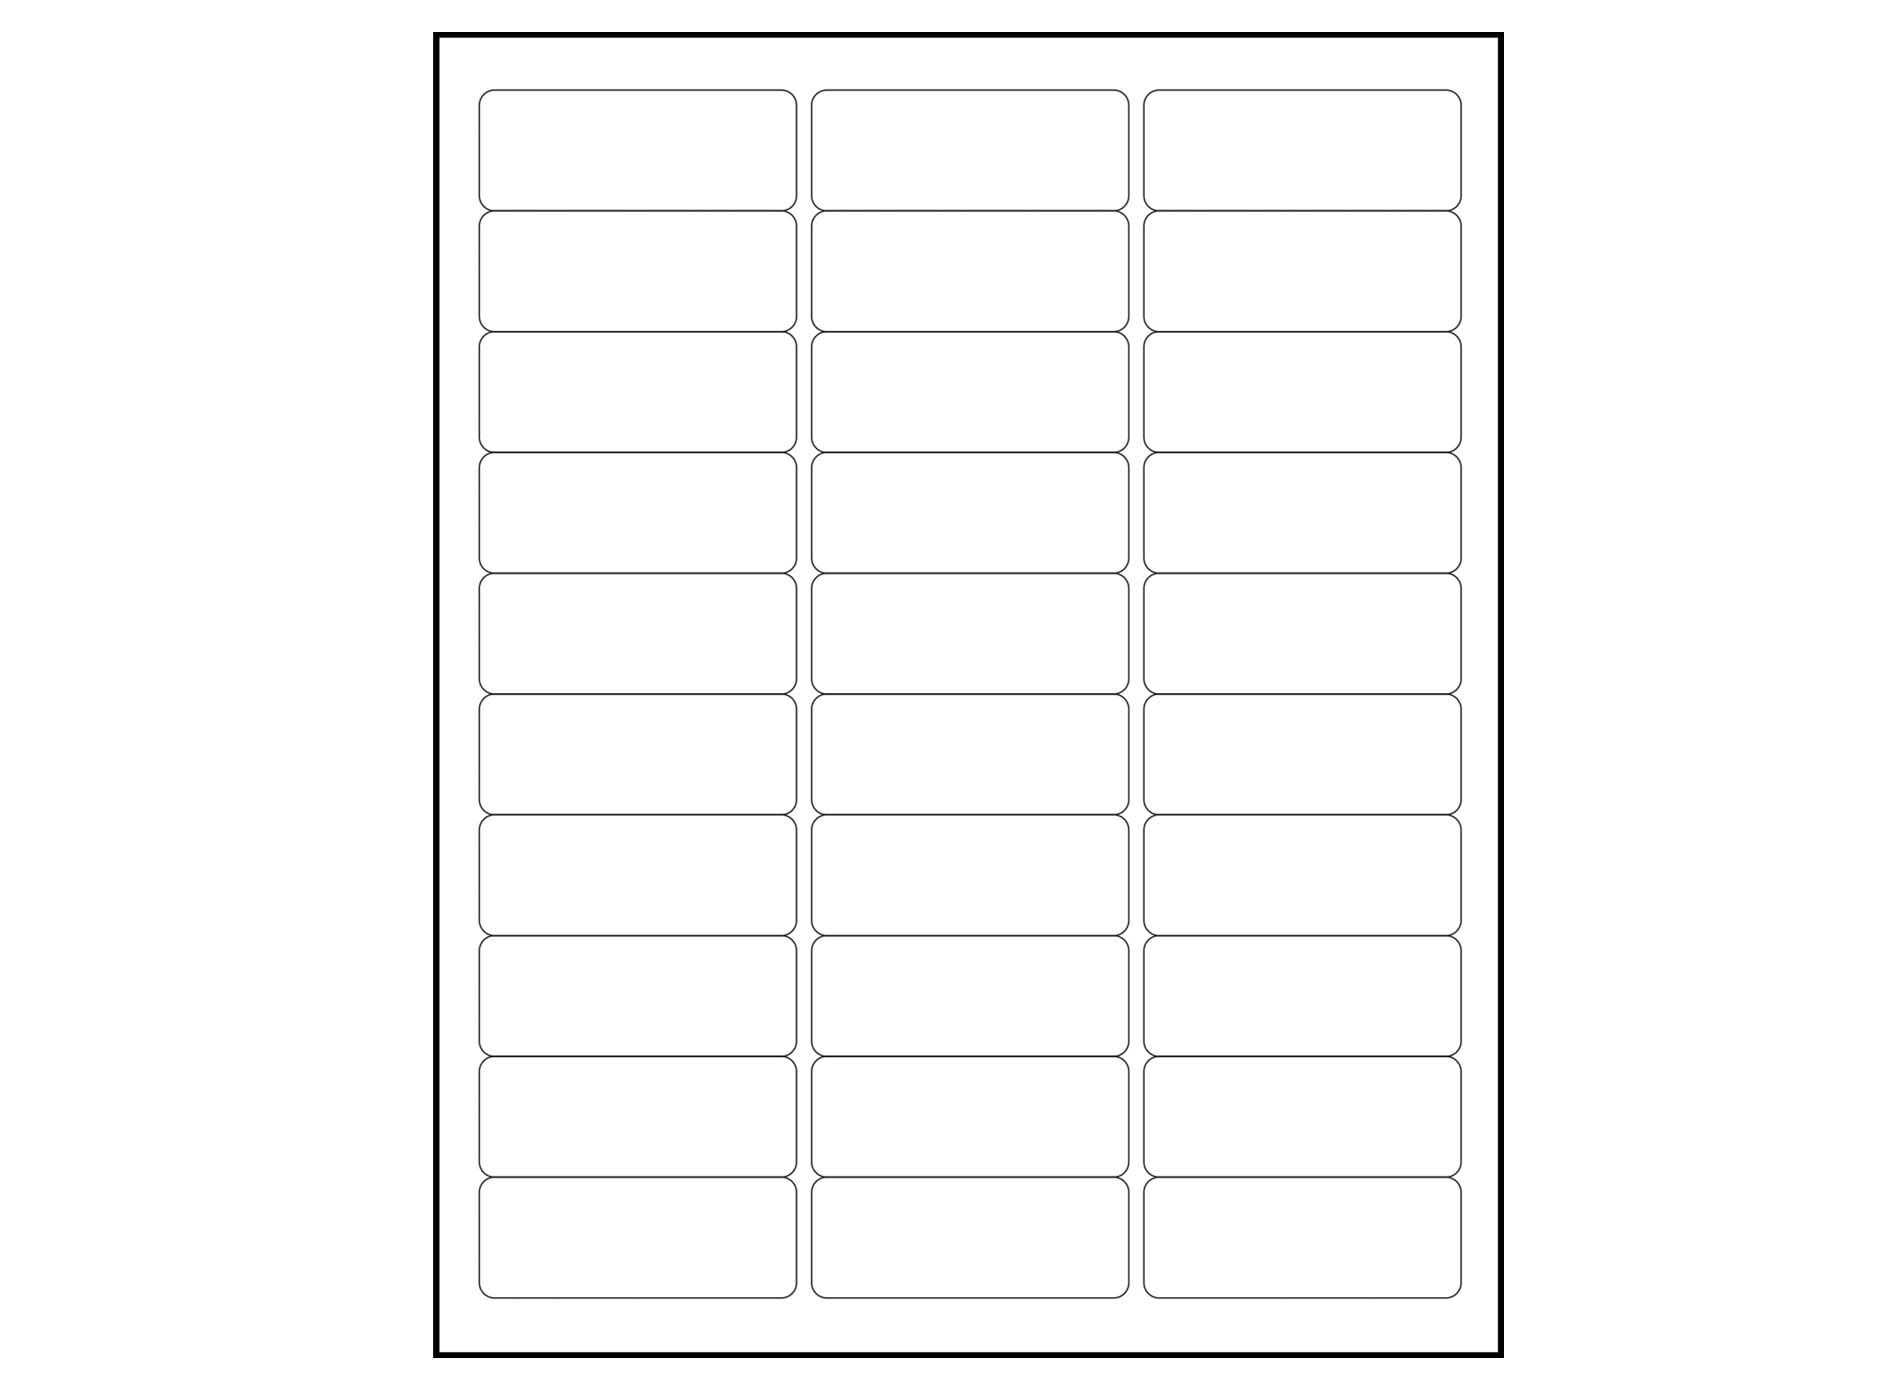 6000 blank 1 x 2 5 8 address labels downloadable label template ...